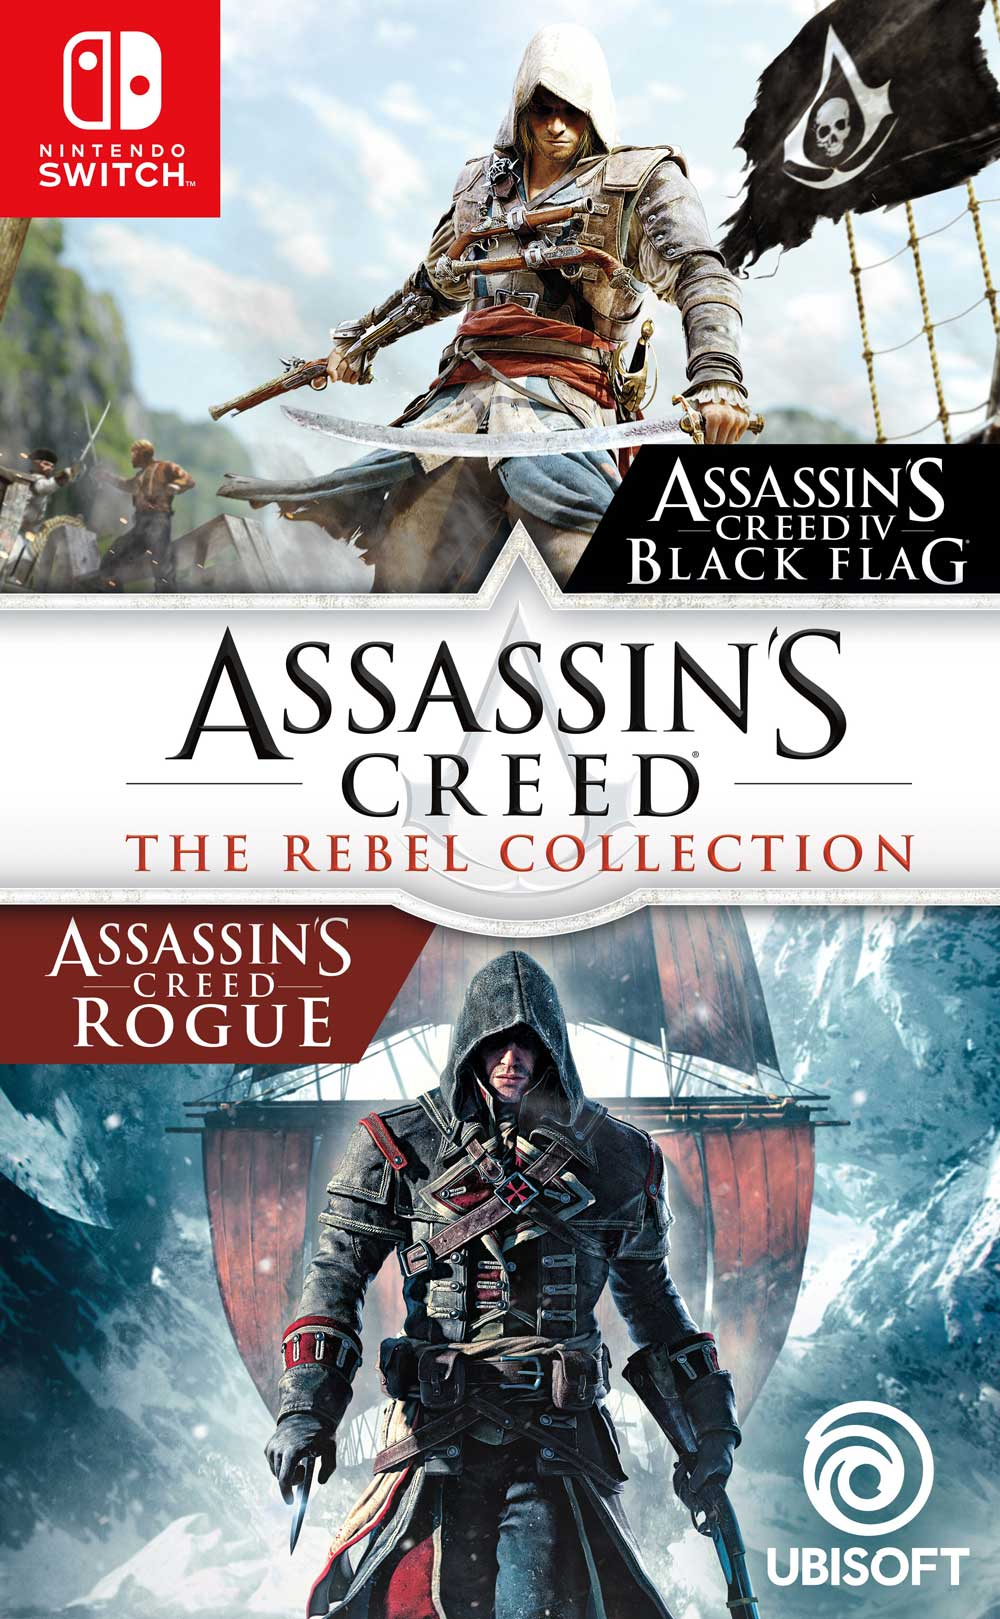 Assassins Creed The Rebel Collection